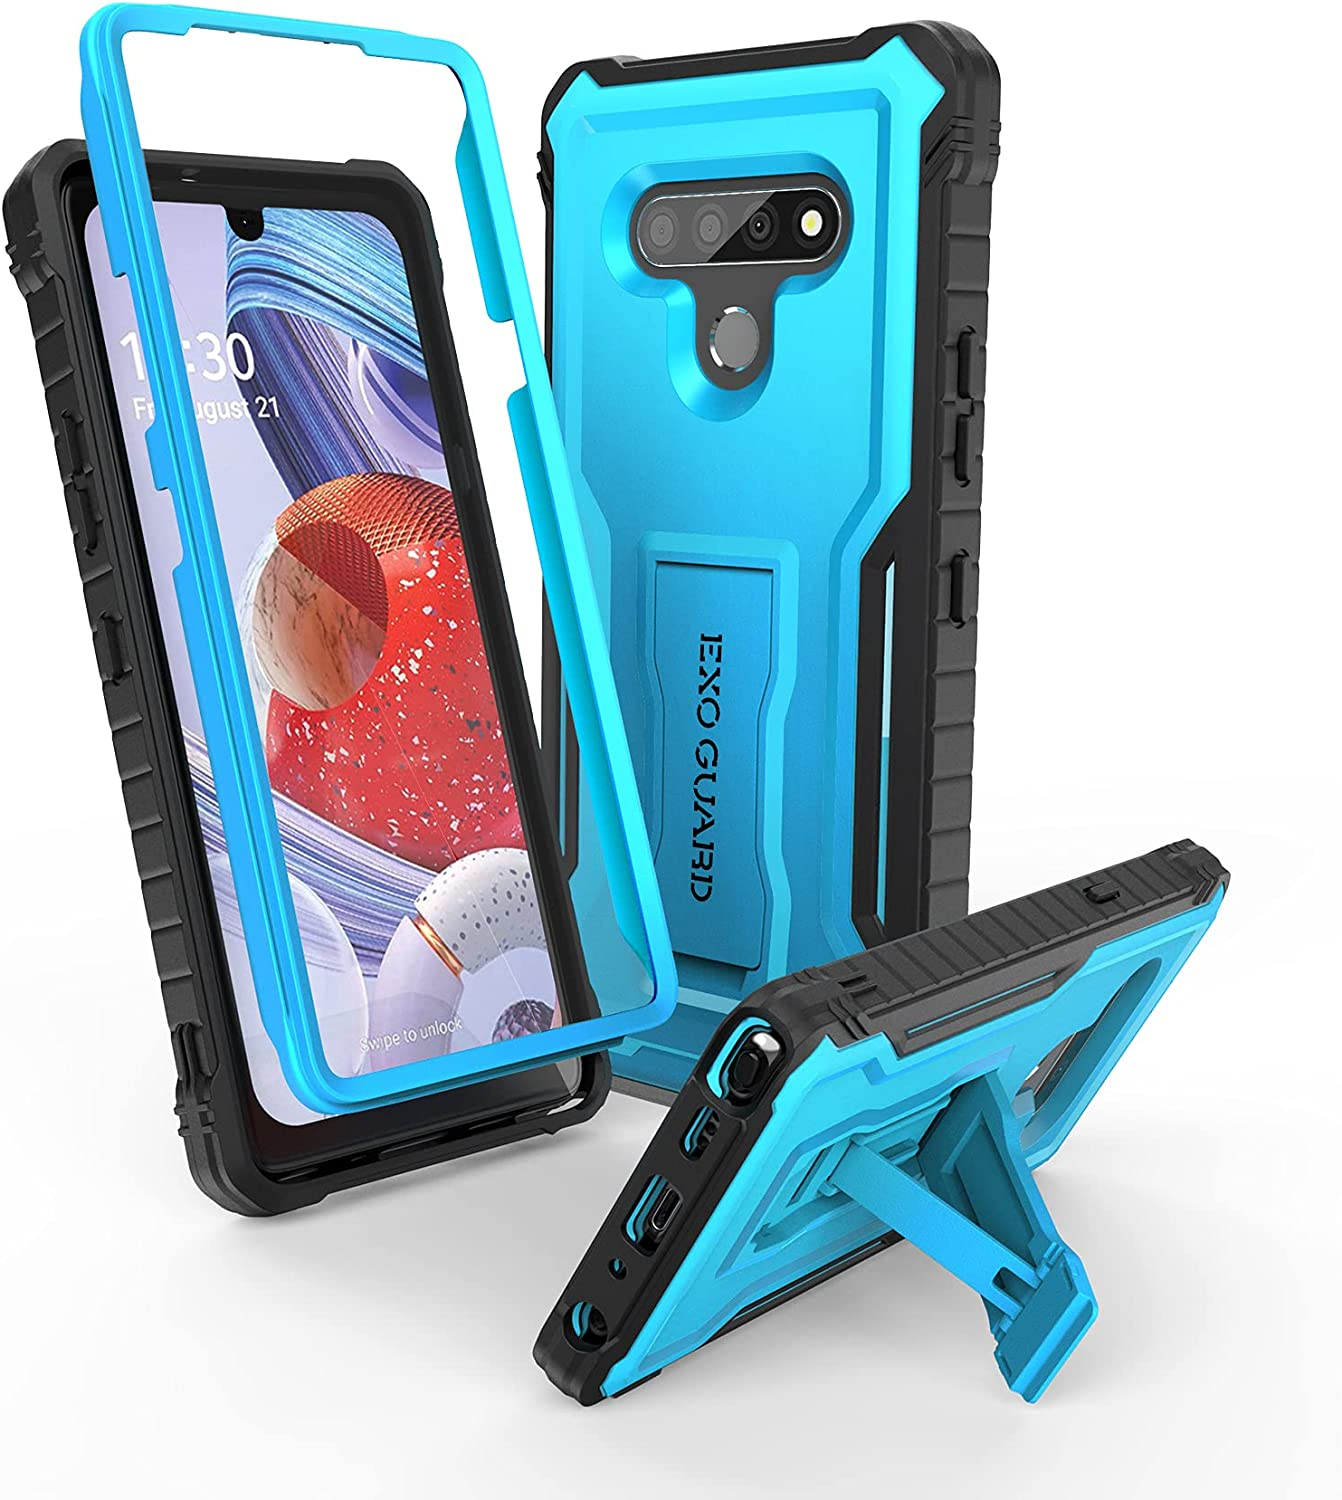 ExoGuard for LG Stylo 6 Case, Rubber Shockproof Cover Case Compatible with LG Stylo 6 Phone, Built-in Kickstand (Blue)